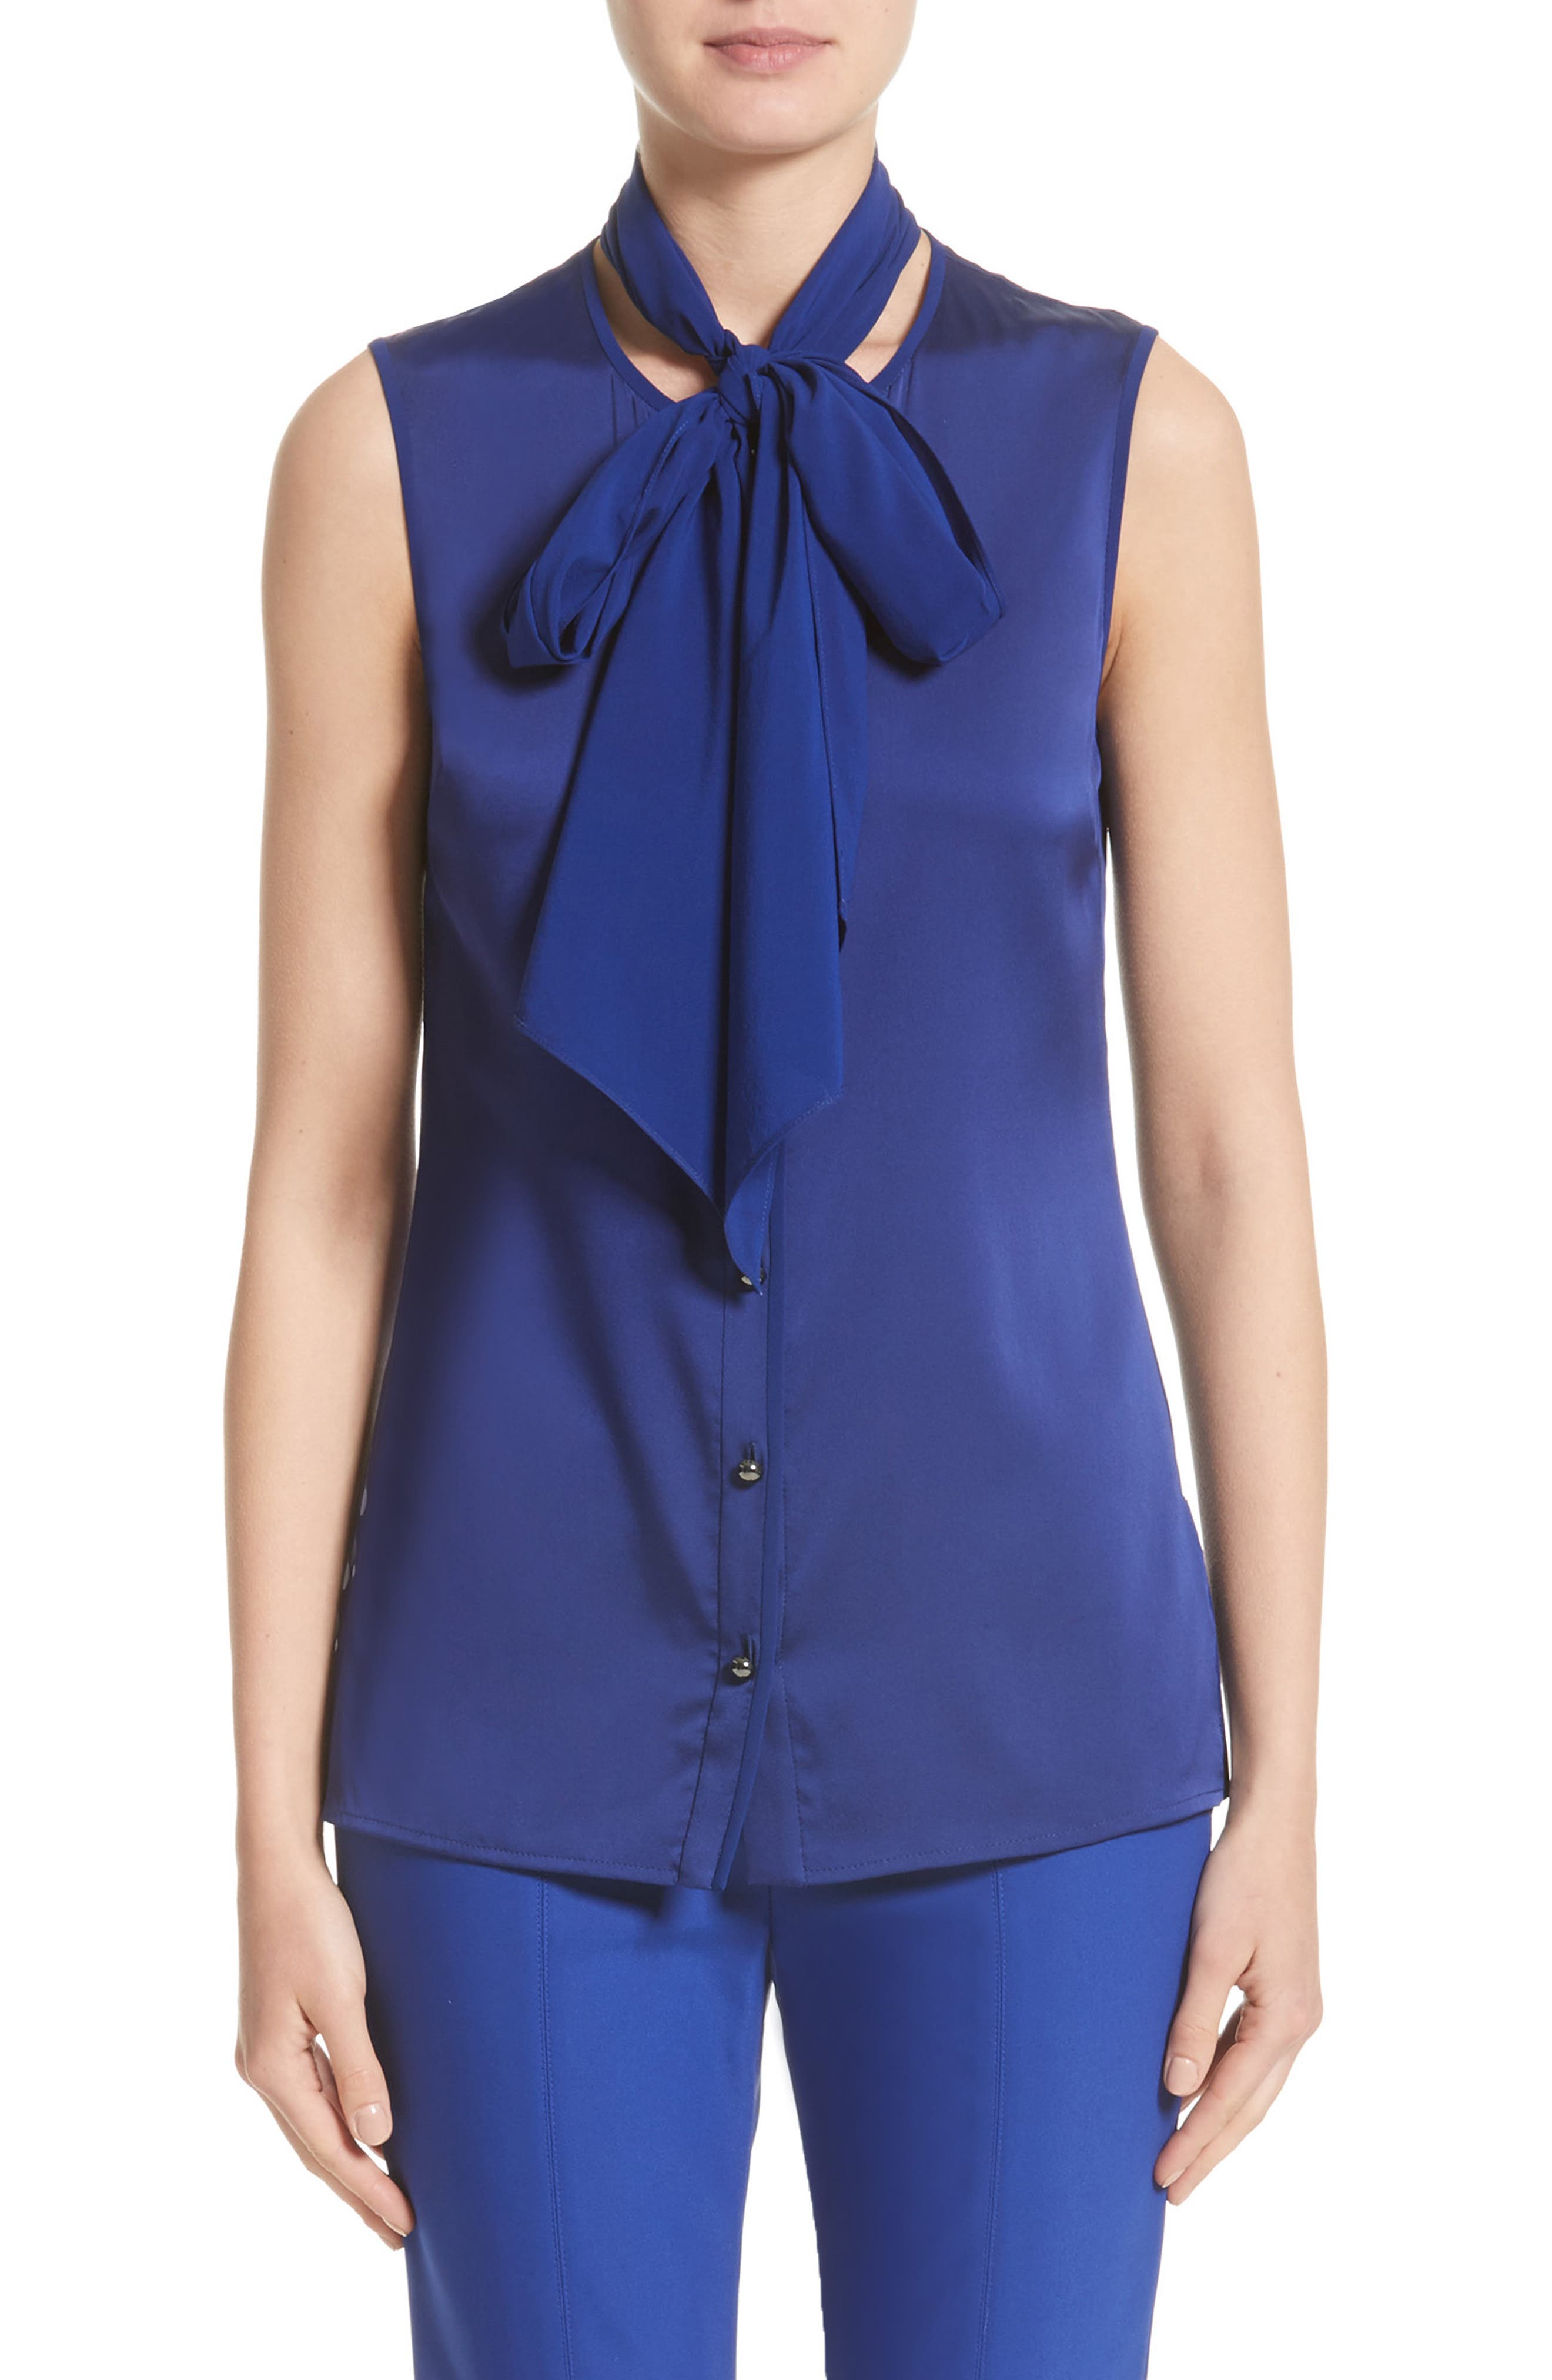 Alternate Image 1 Selected - St. John Collection Removable Tie Stretch Silk Satin Georgette Blouse